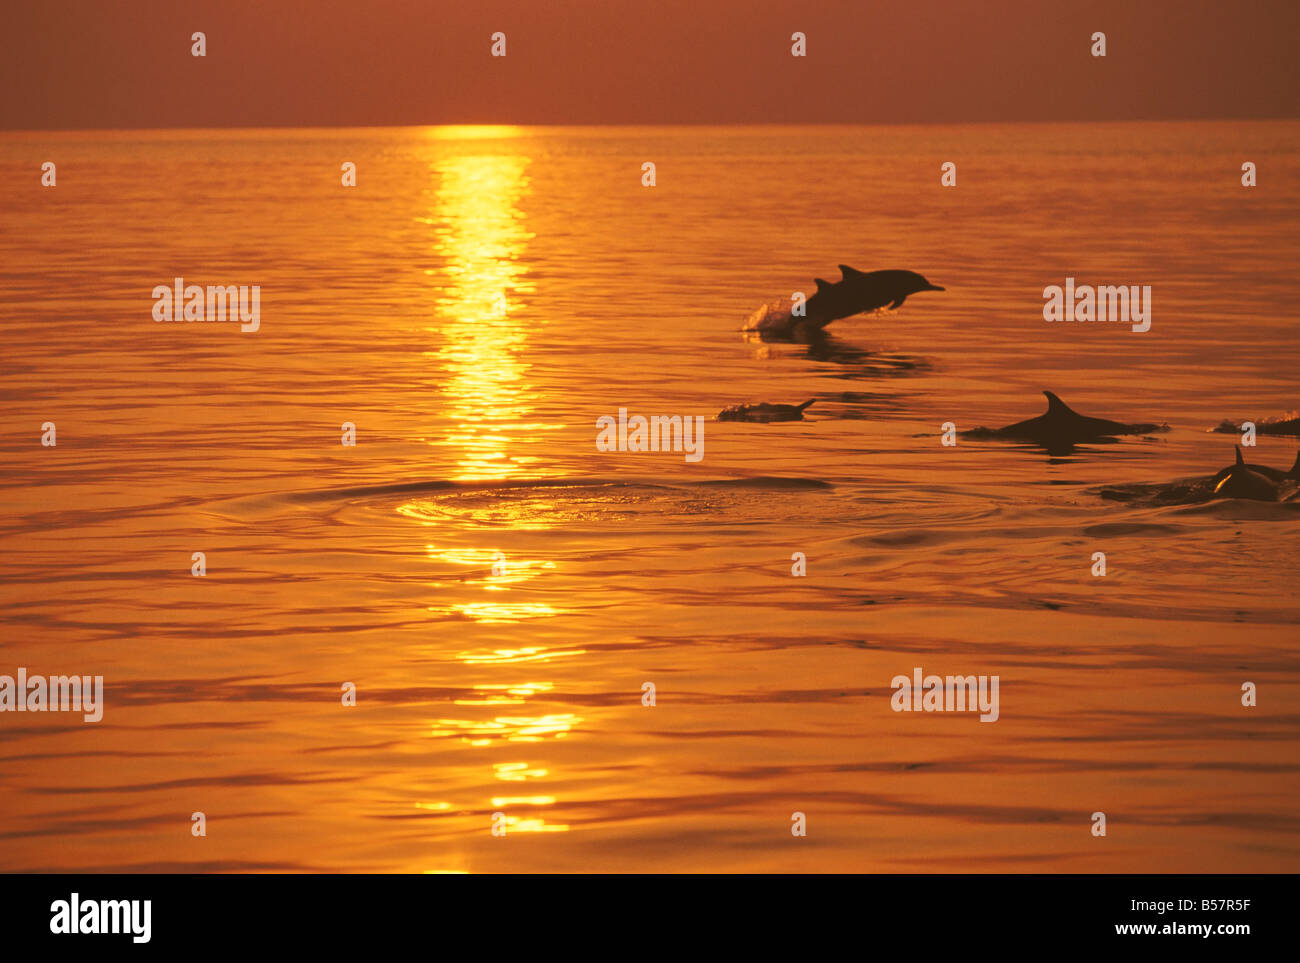 Dolphins swimming at sunset, Maldives, Indian Ocean, Asia - Stock Image